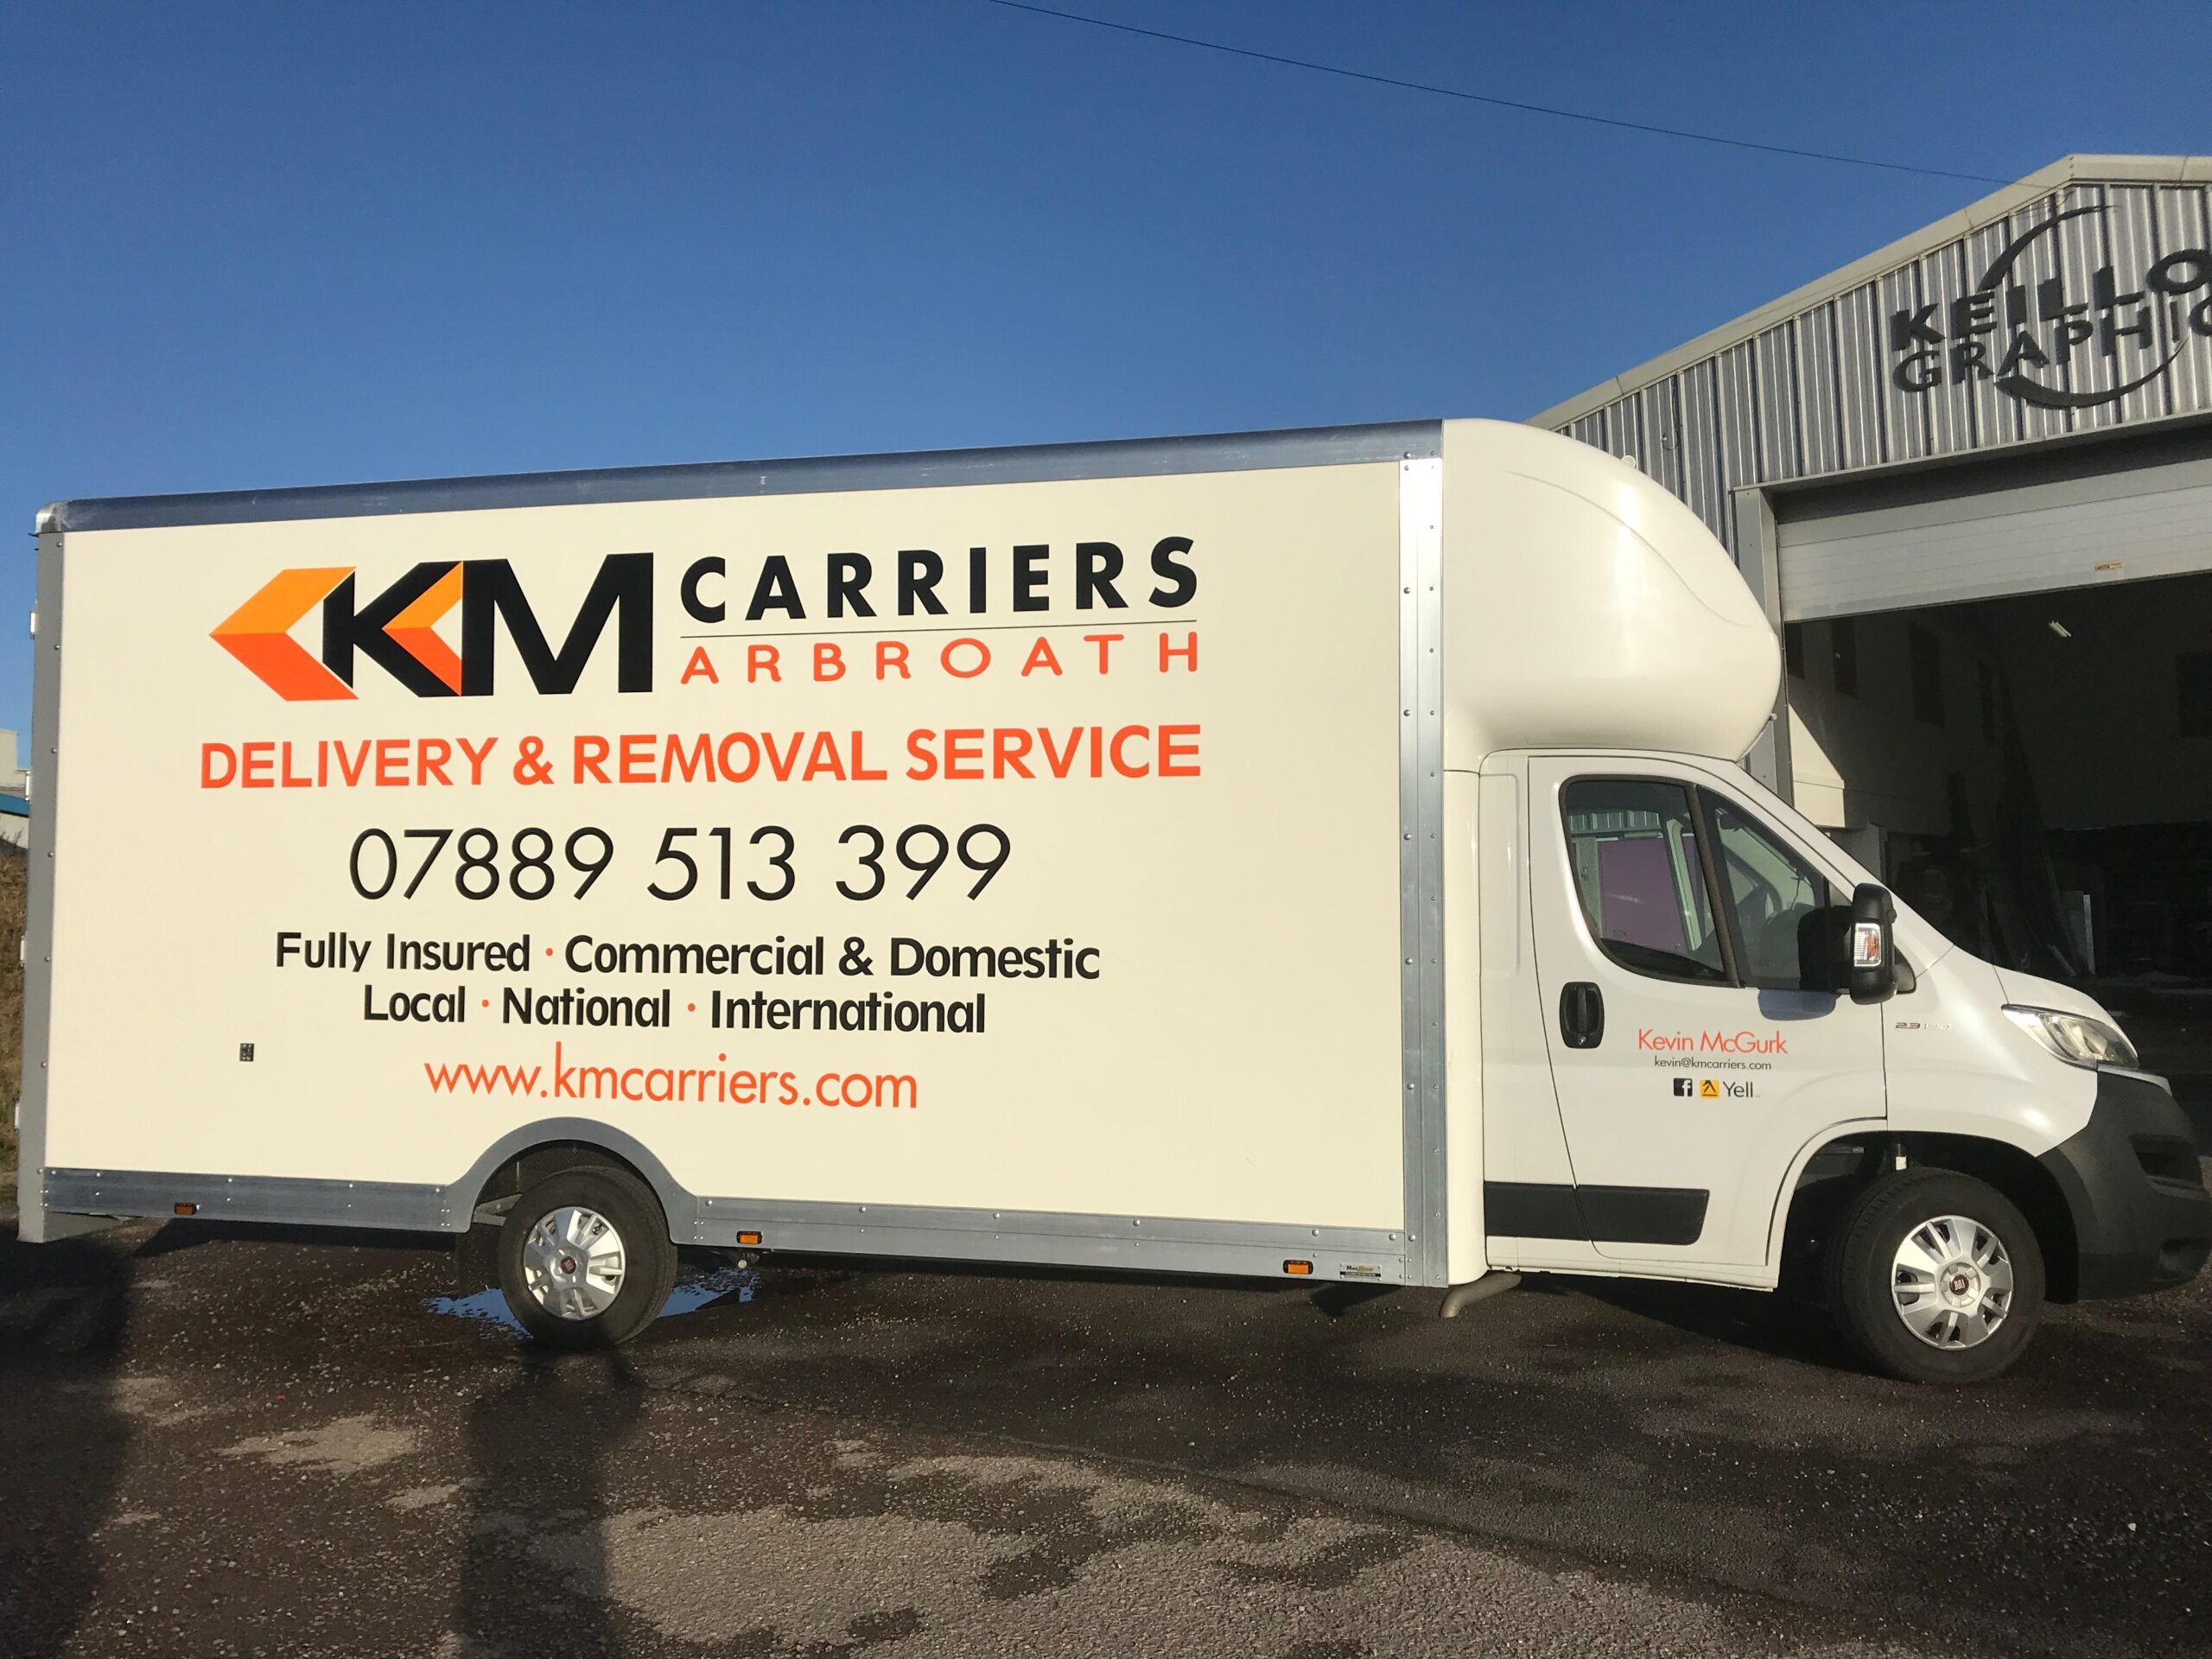 KM Carriers